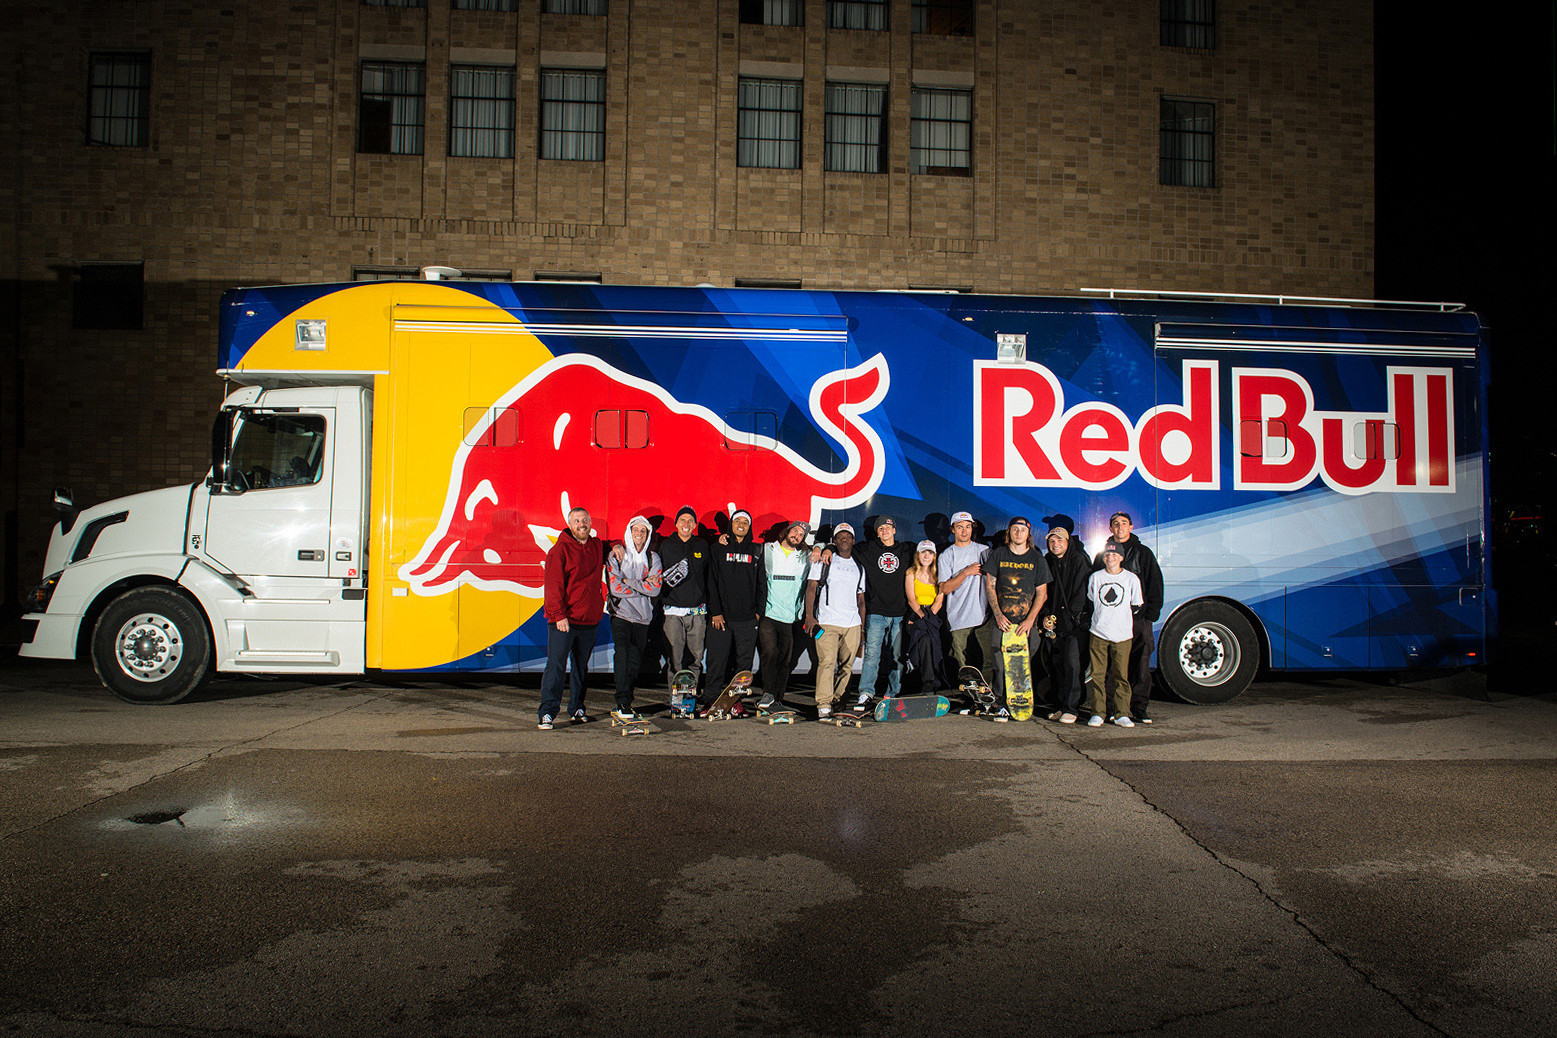 Red Bull This is Live X Drop In Broadcast skateboarding Torey Pudwill Zion Wright Jamie Foy Alex Midler chris cote chris pastras ryan sheckler action alliance park broadcast